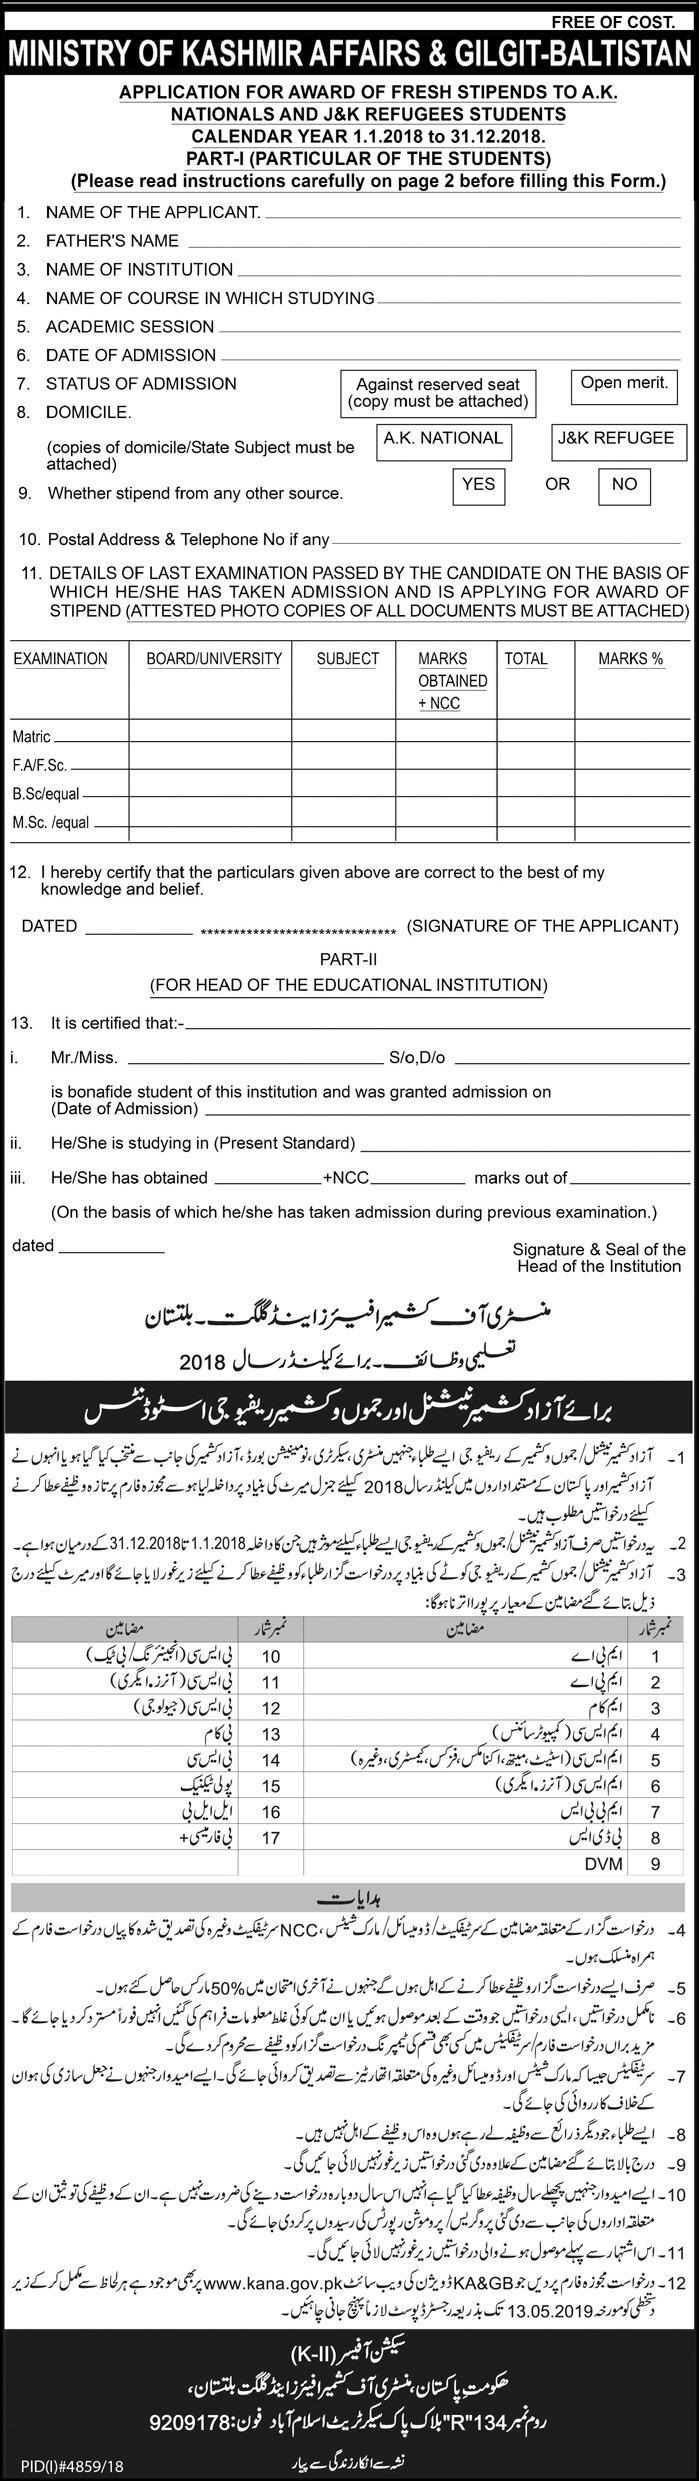 Scholarships 2019 For Students of AJK & GB, Download Form